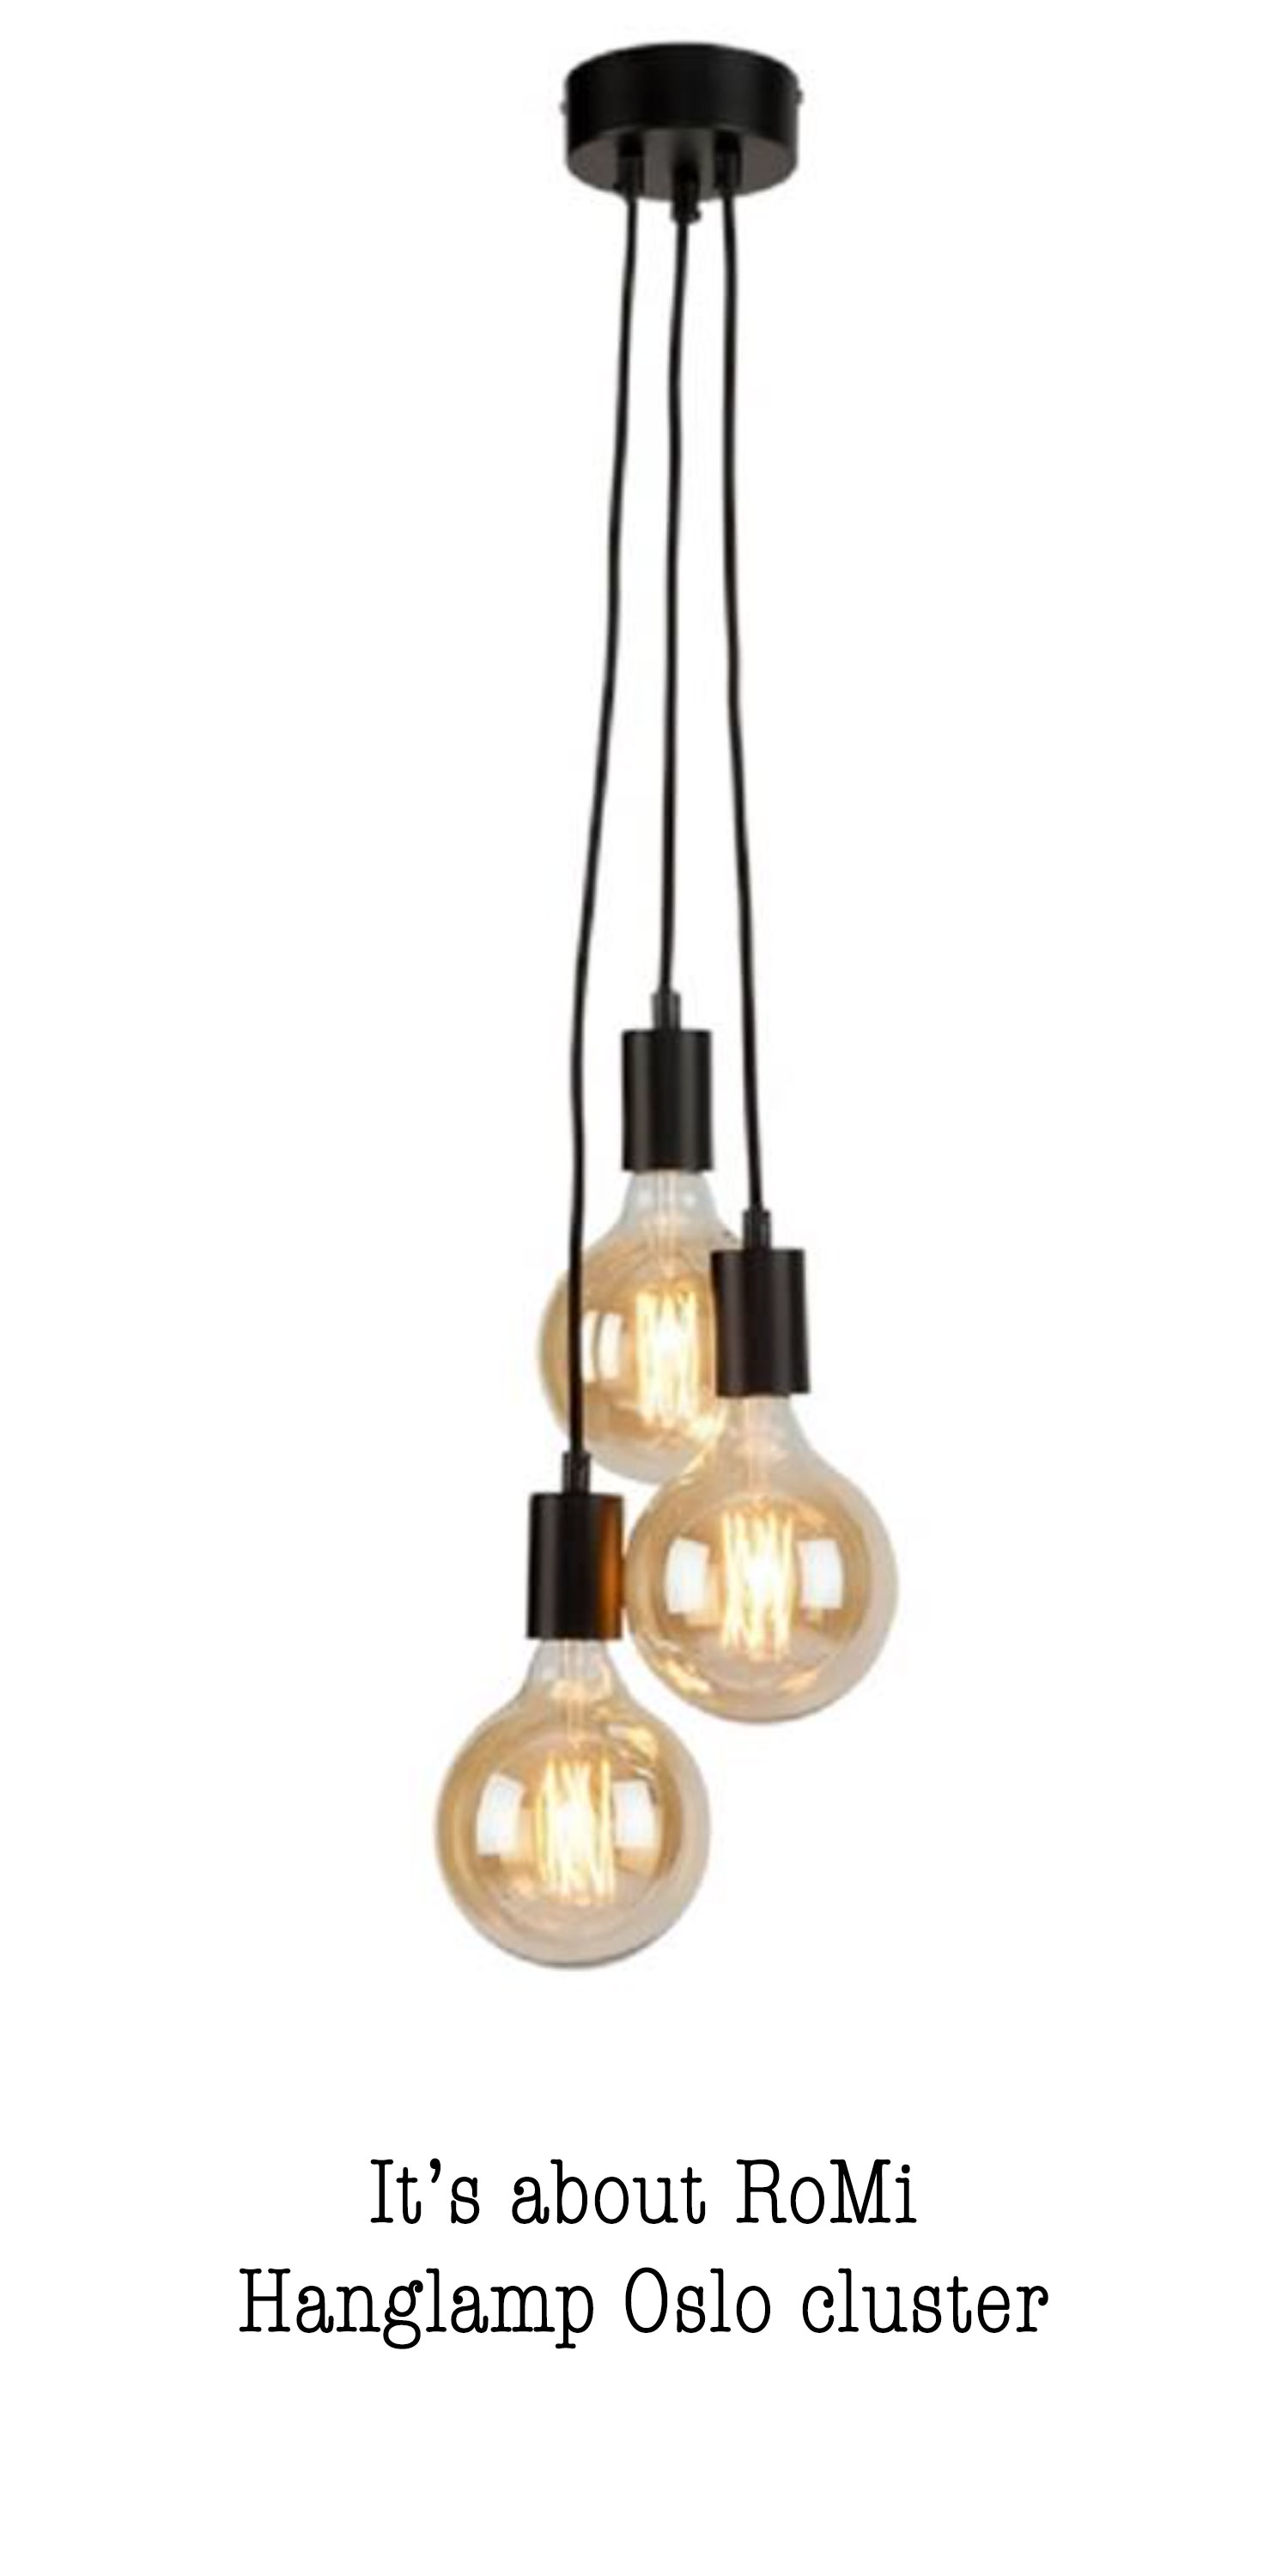 By Venes shop the look Hanglamp Oslo cluster van Its about RoMi